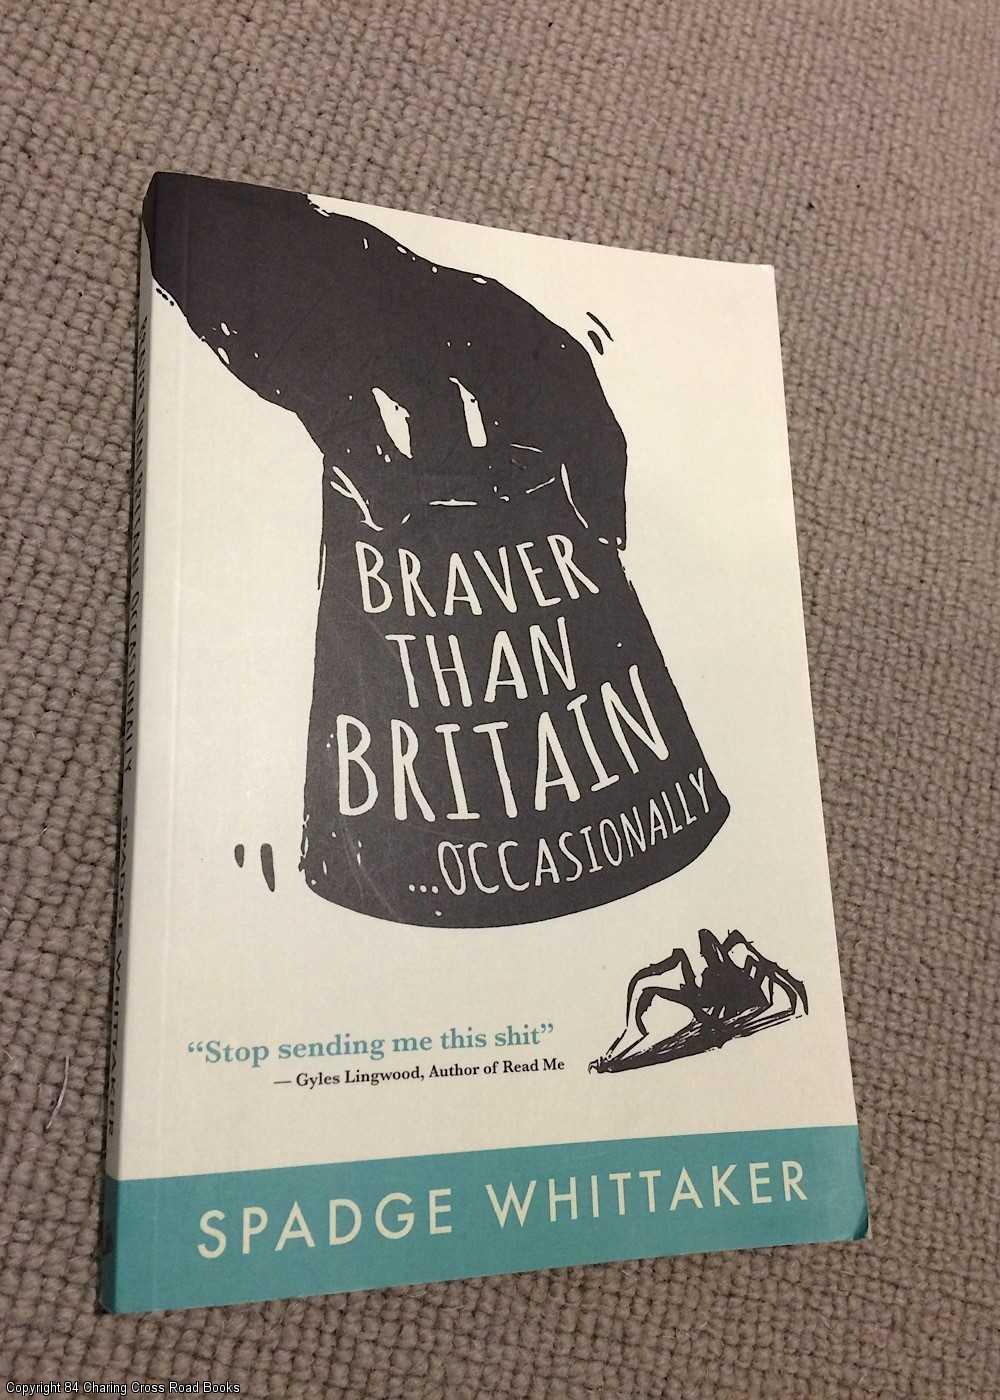 WHITTAKER, SPADGE - Braver Than Britain, Occasionally